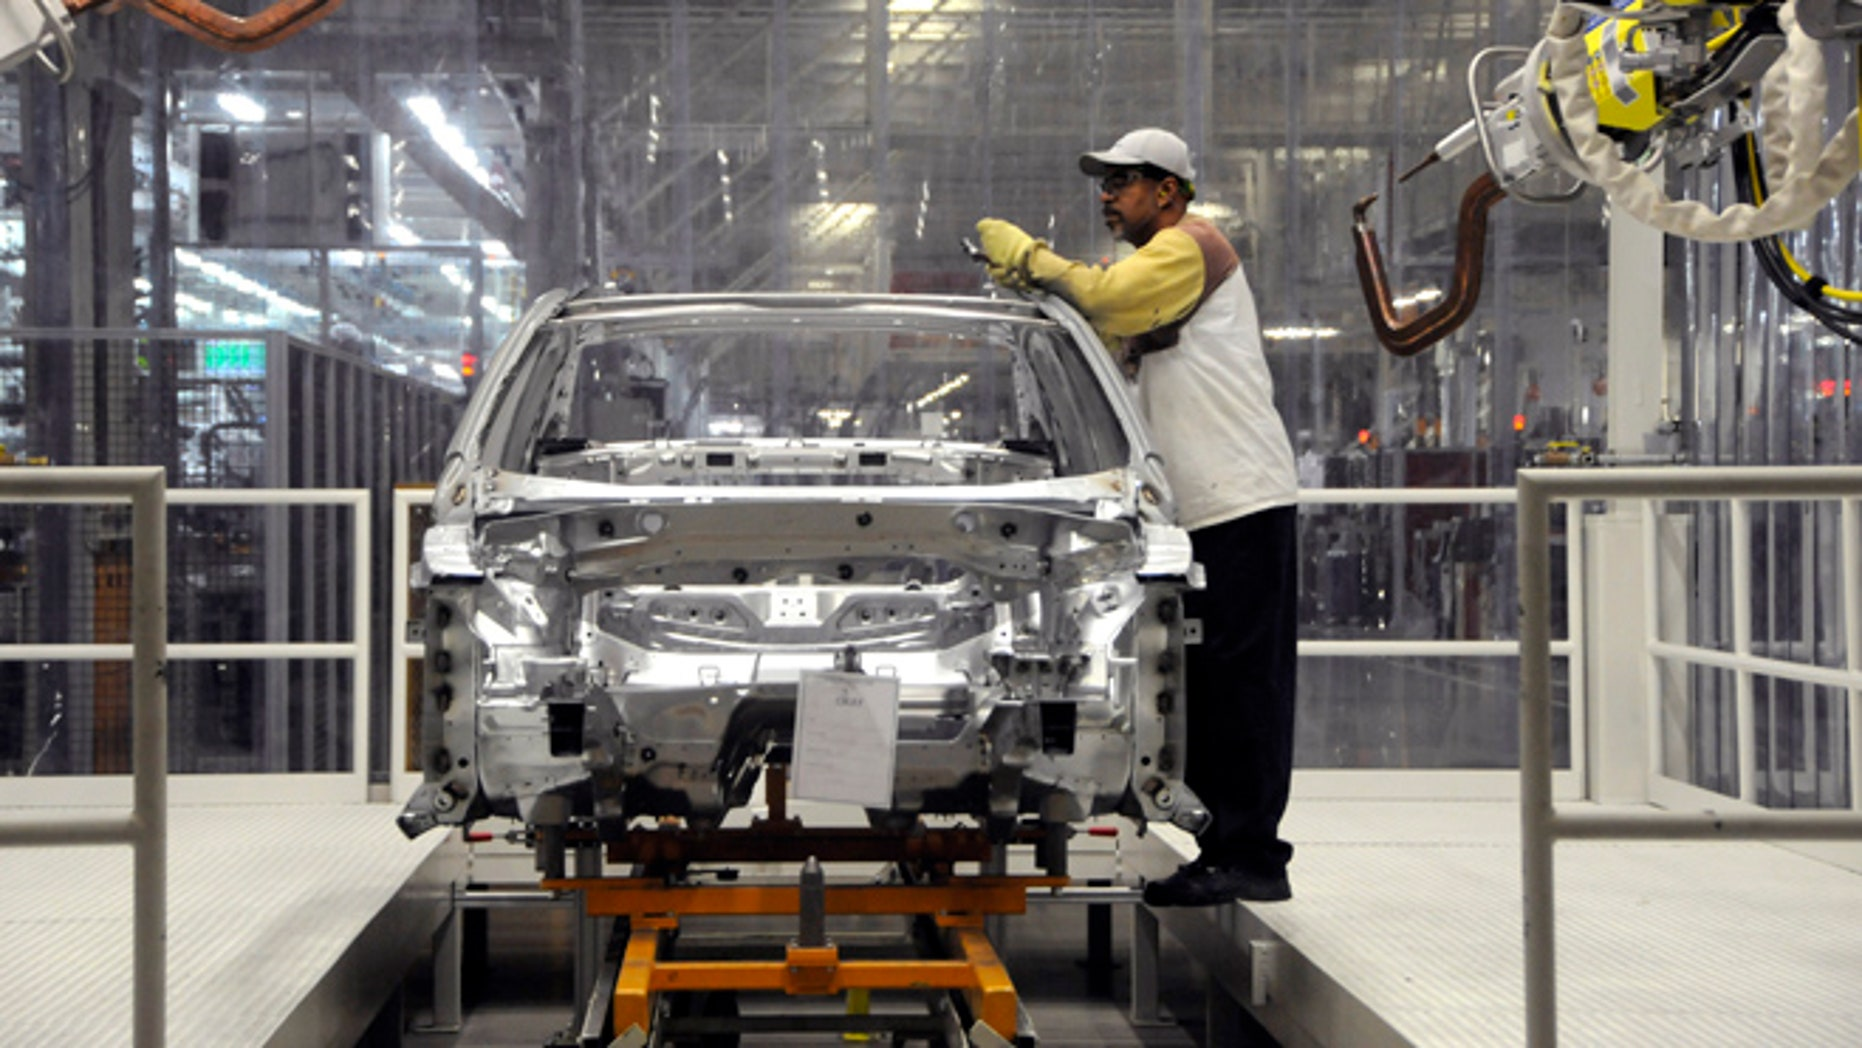 Employees at the Volkswagen plant in Chattanooga, Tenn., recently voted against union representation from United Auto Workers. (Reuters/Billy Weeks)